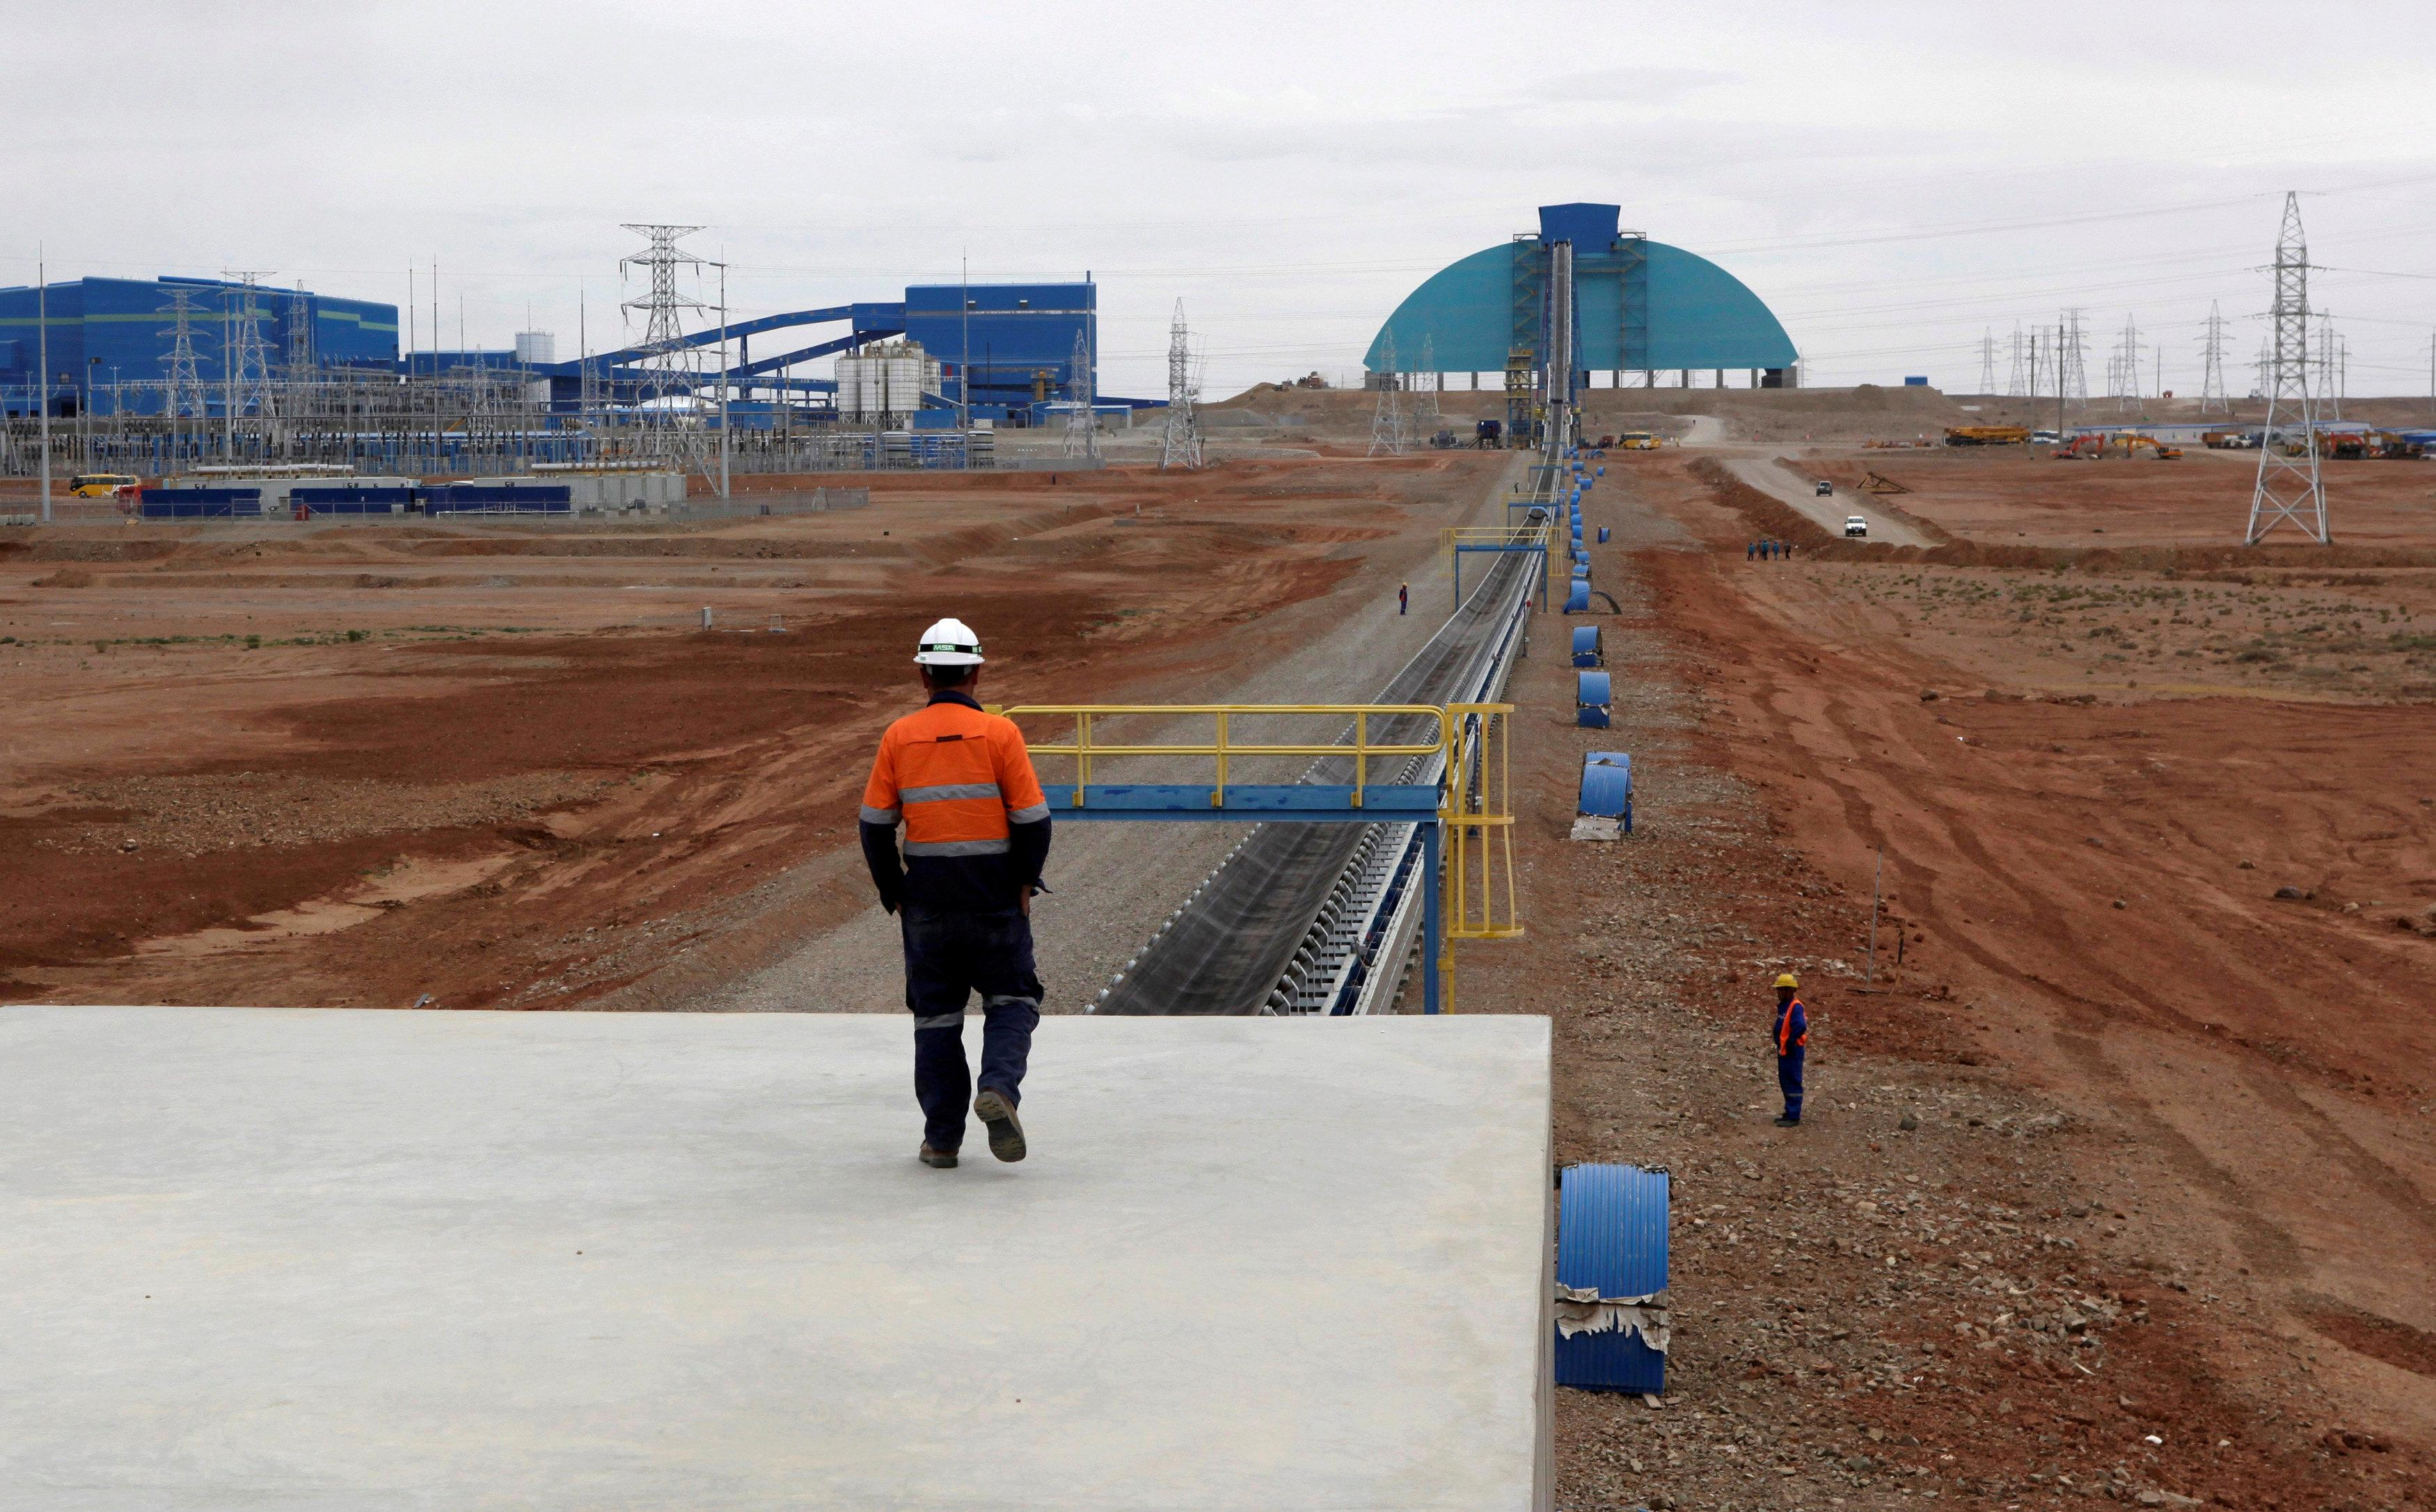 An employee looks at the Oyu Tolgoi mine in Mongolia's South Gobi region June 23, 2012. David Stanway